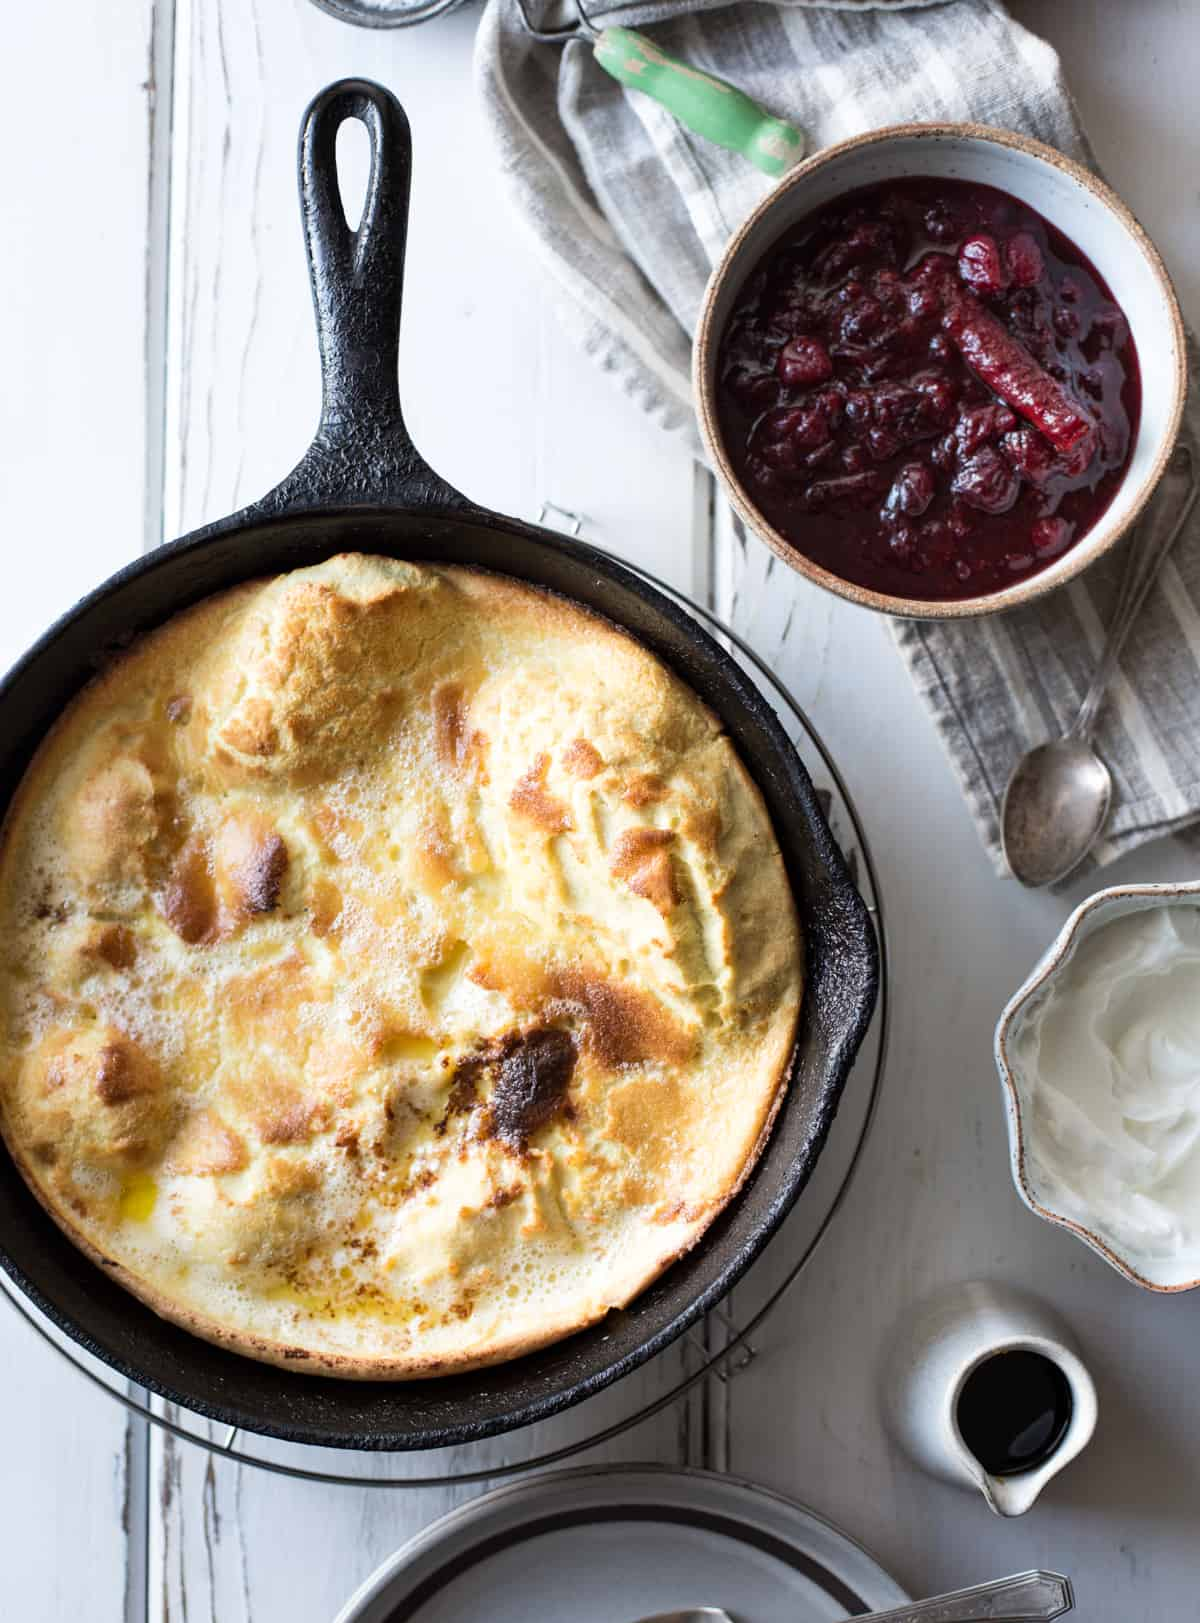 Gluten-Free Sorghum Buttermilk Dutch Baby, Maple Cranberry Sauce in skillet